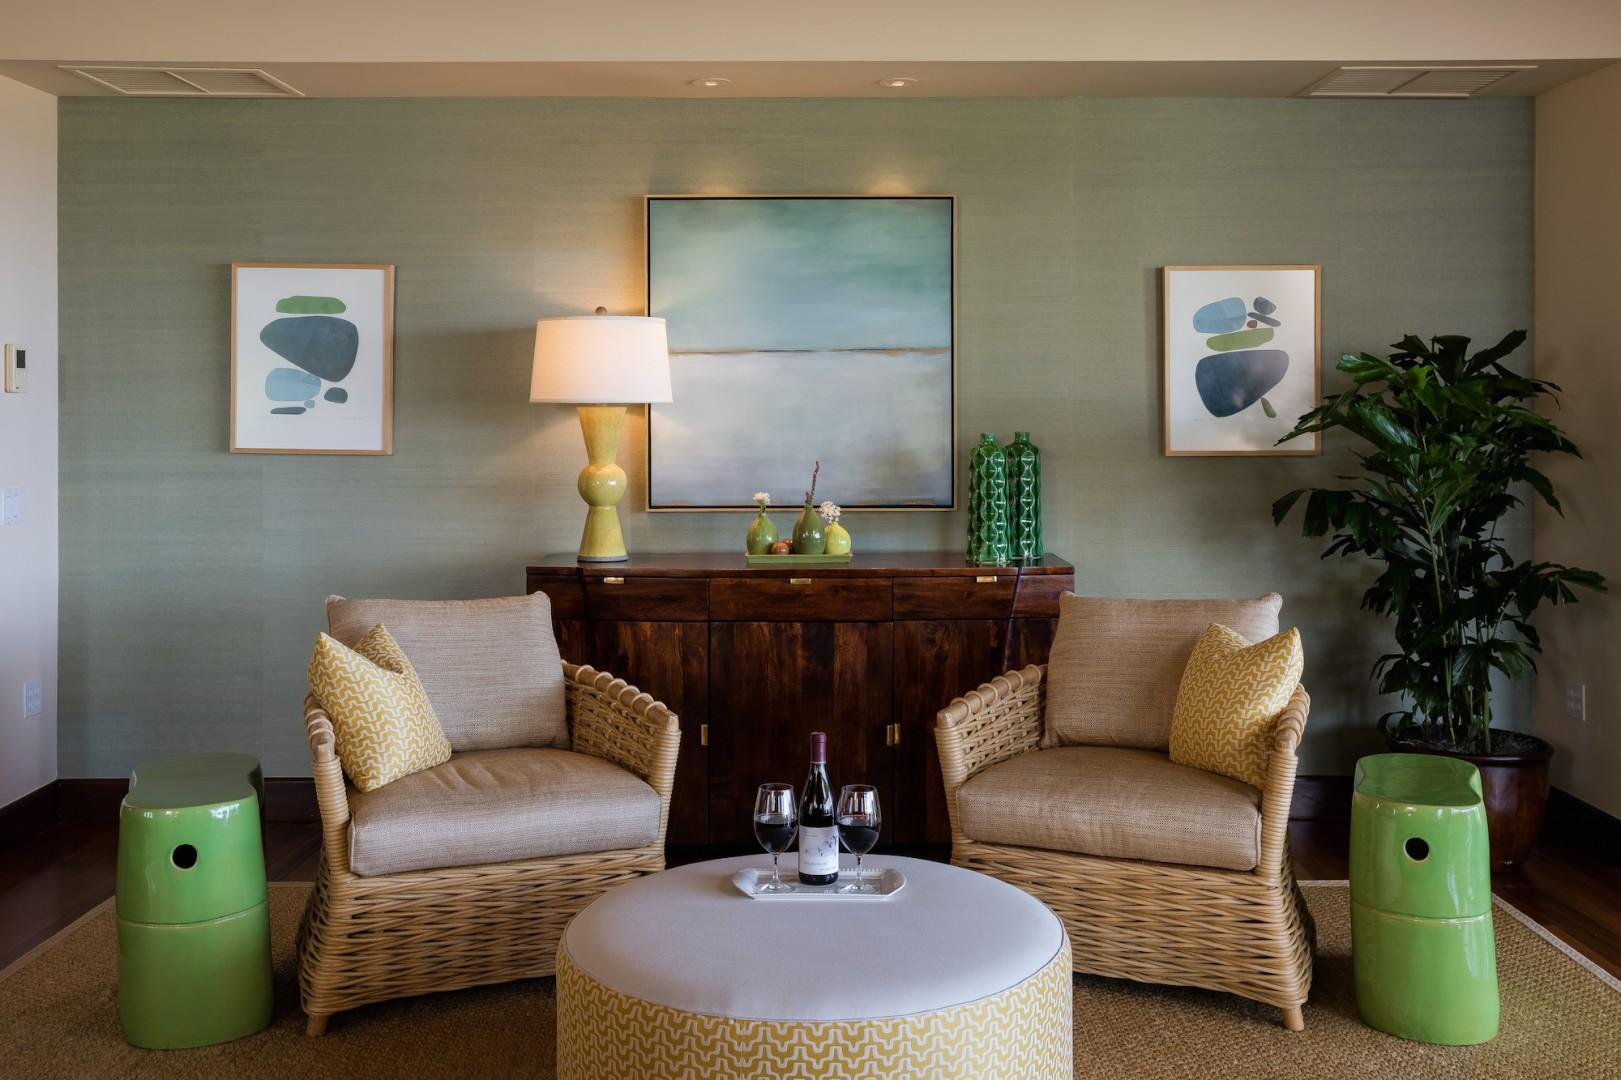 Chic sitting area, ideal for enjoying a book or a glass of wine.